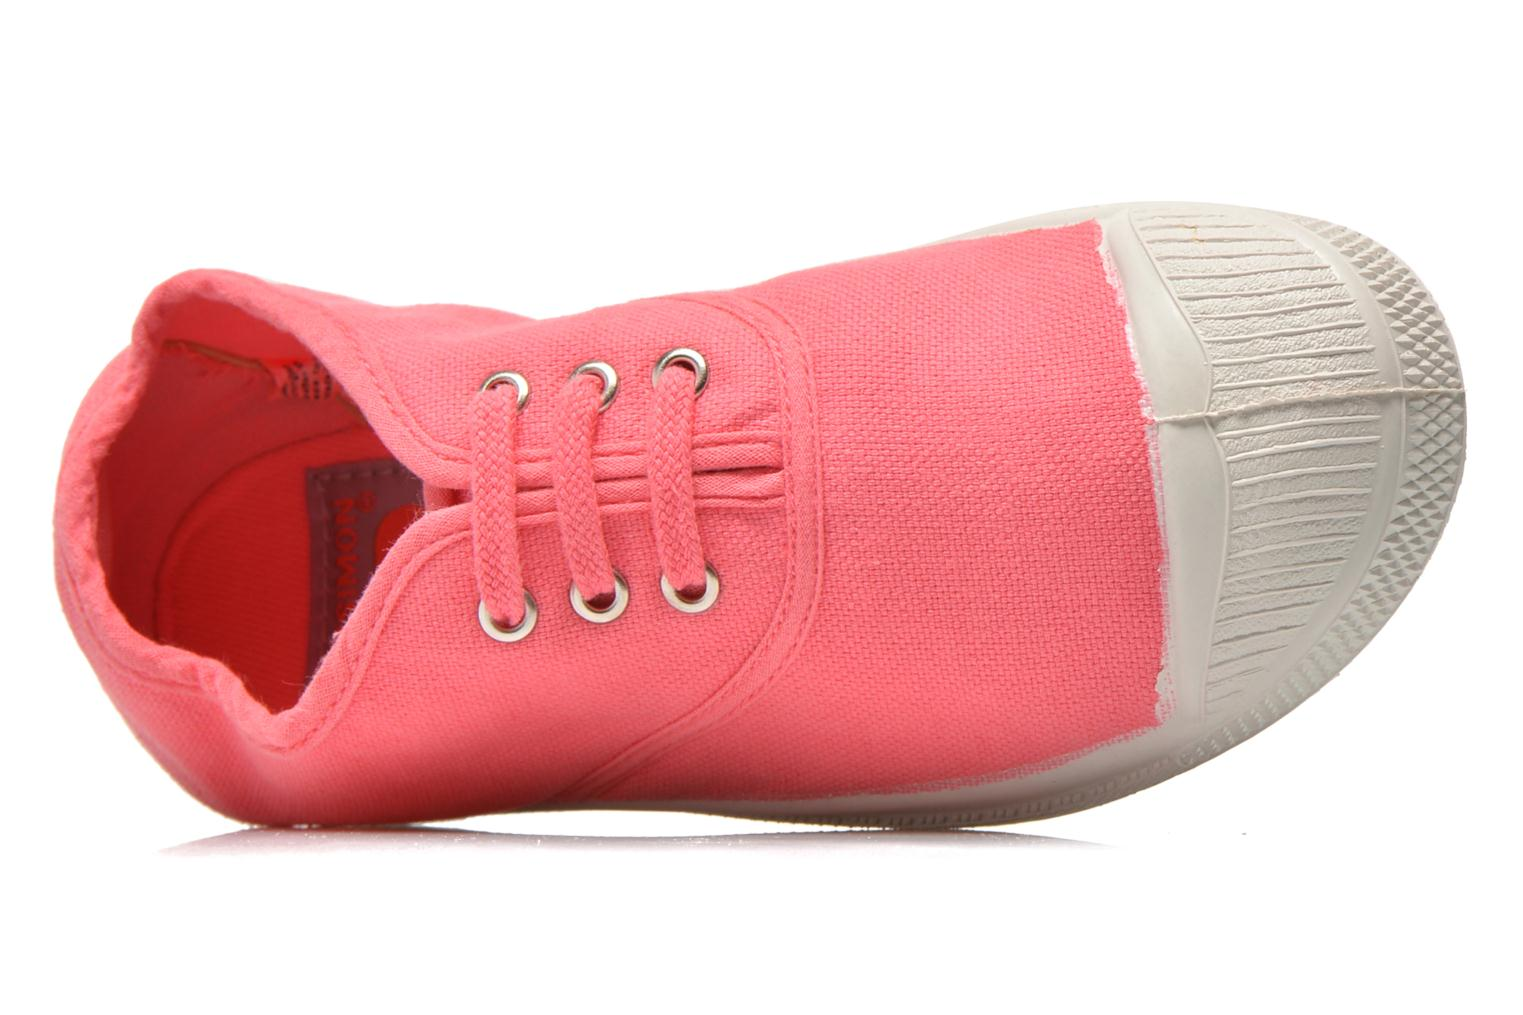 Tennis Lacets E Rose 2